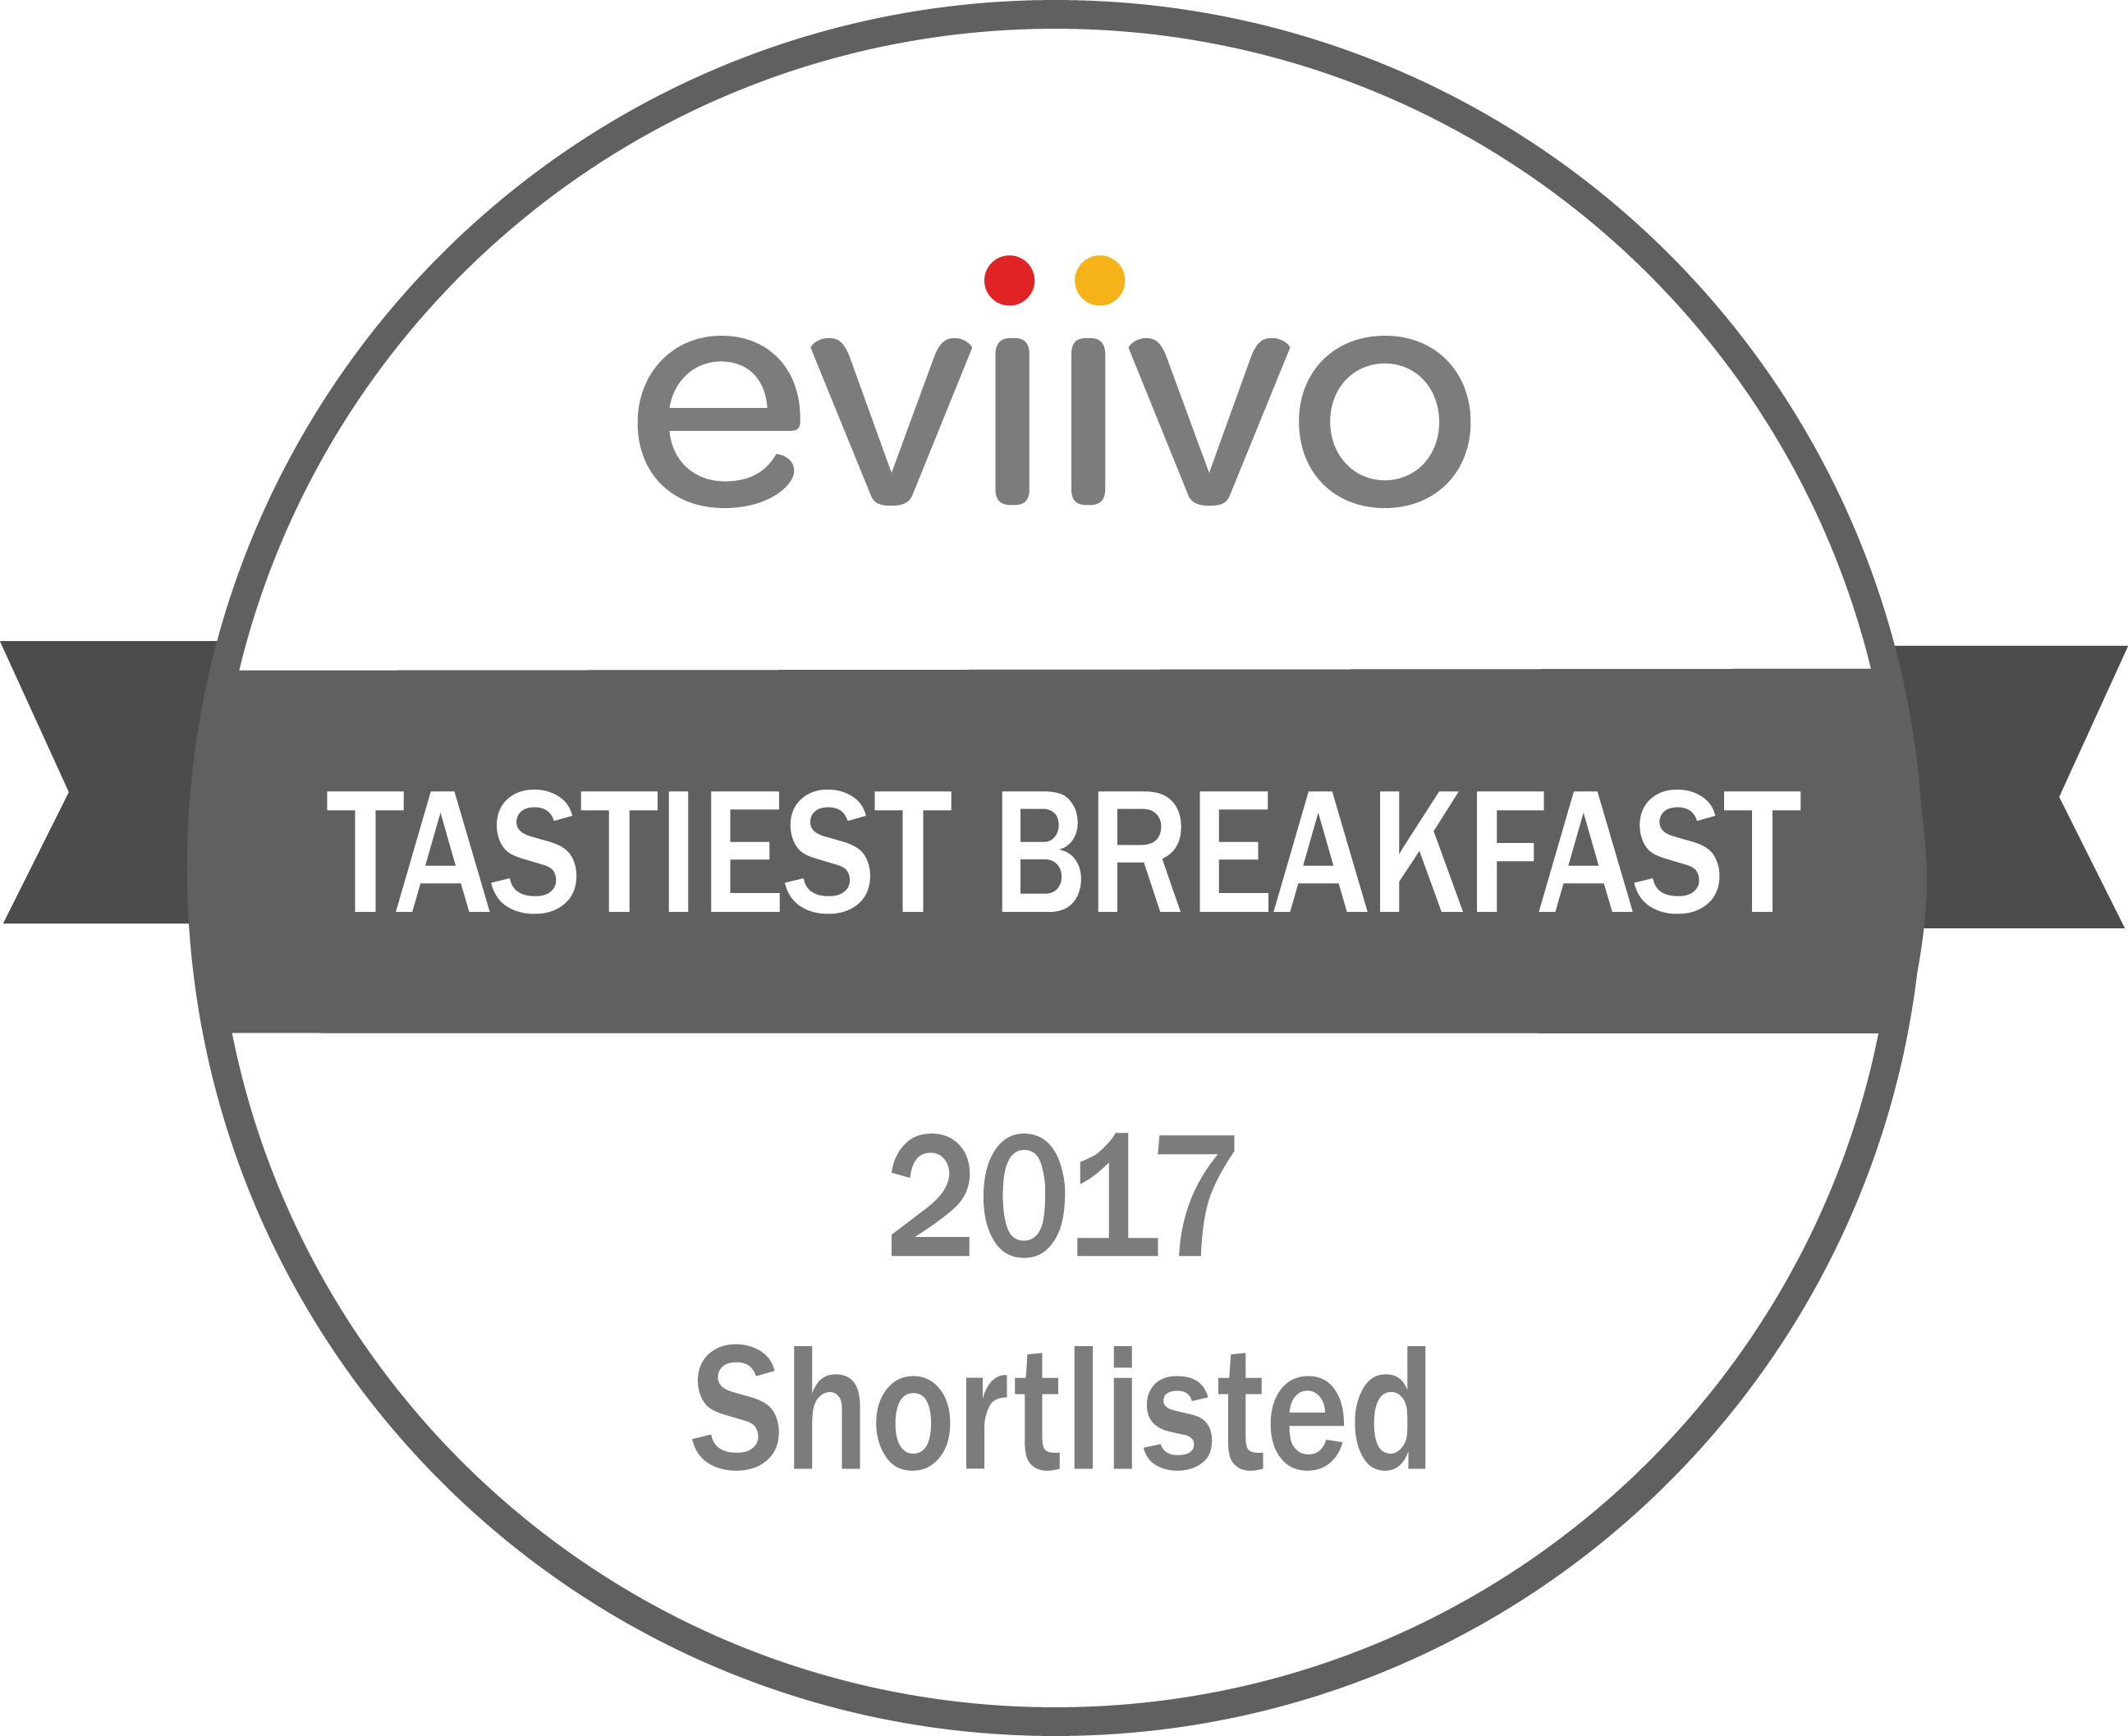 eviivo awards 2017 shortlist